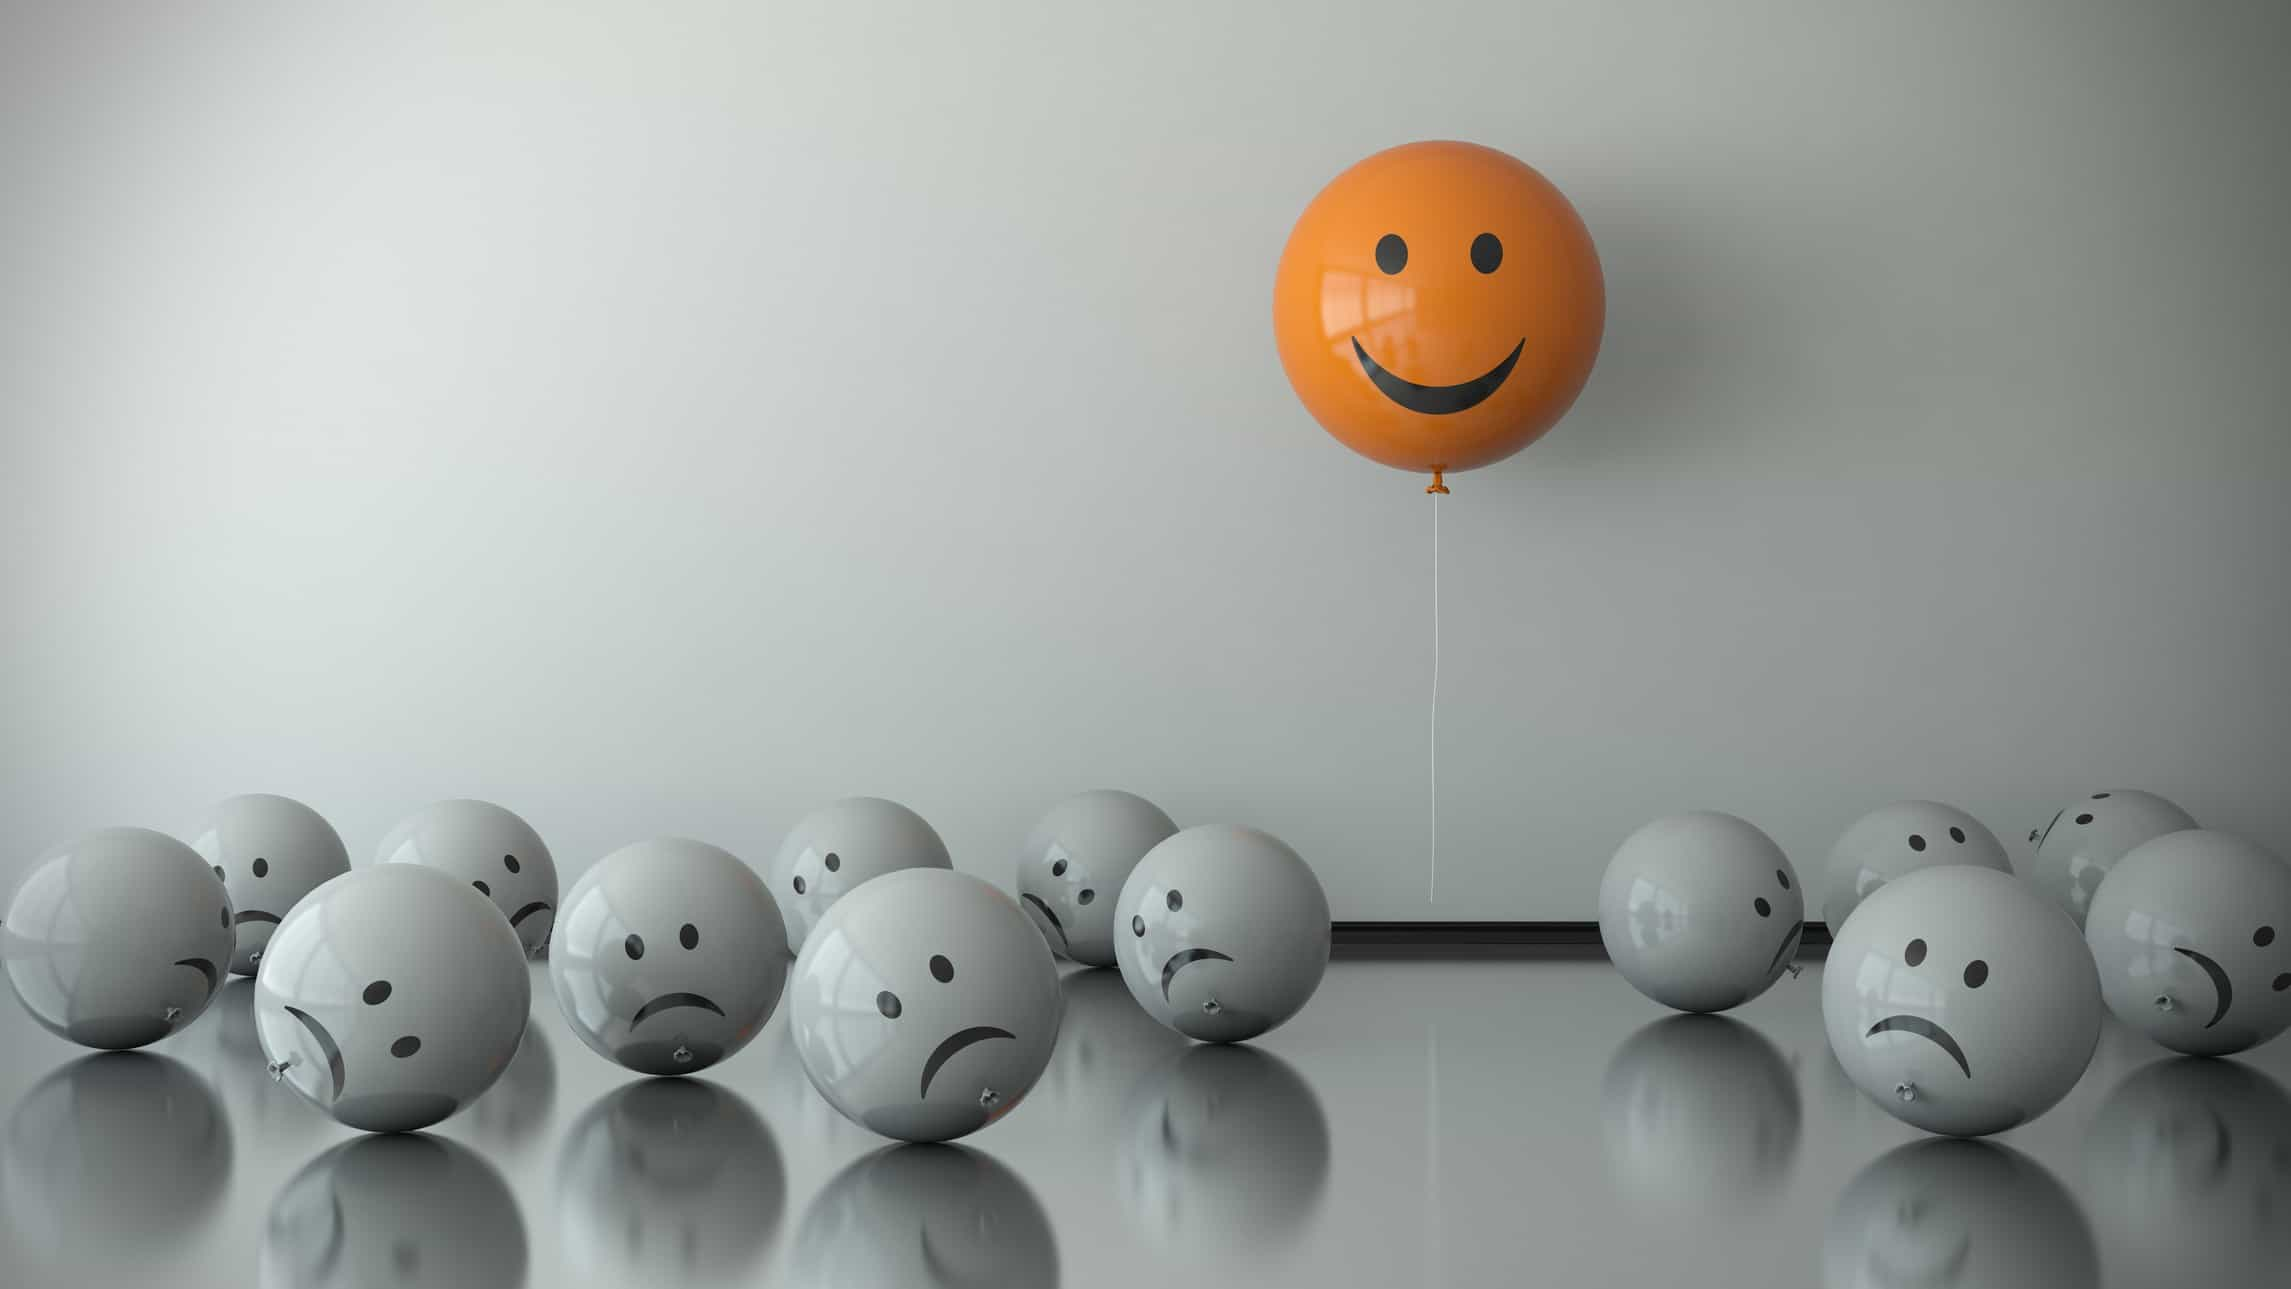 party of asx shares represented by happy orange balloon floating above sad grey balloons